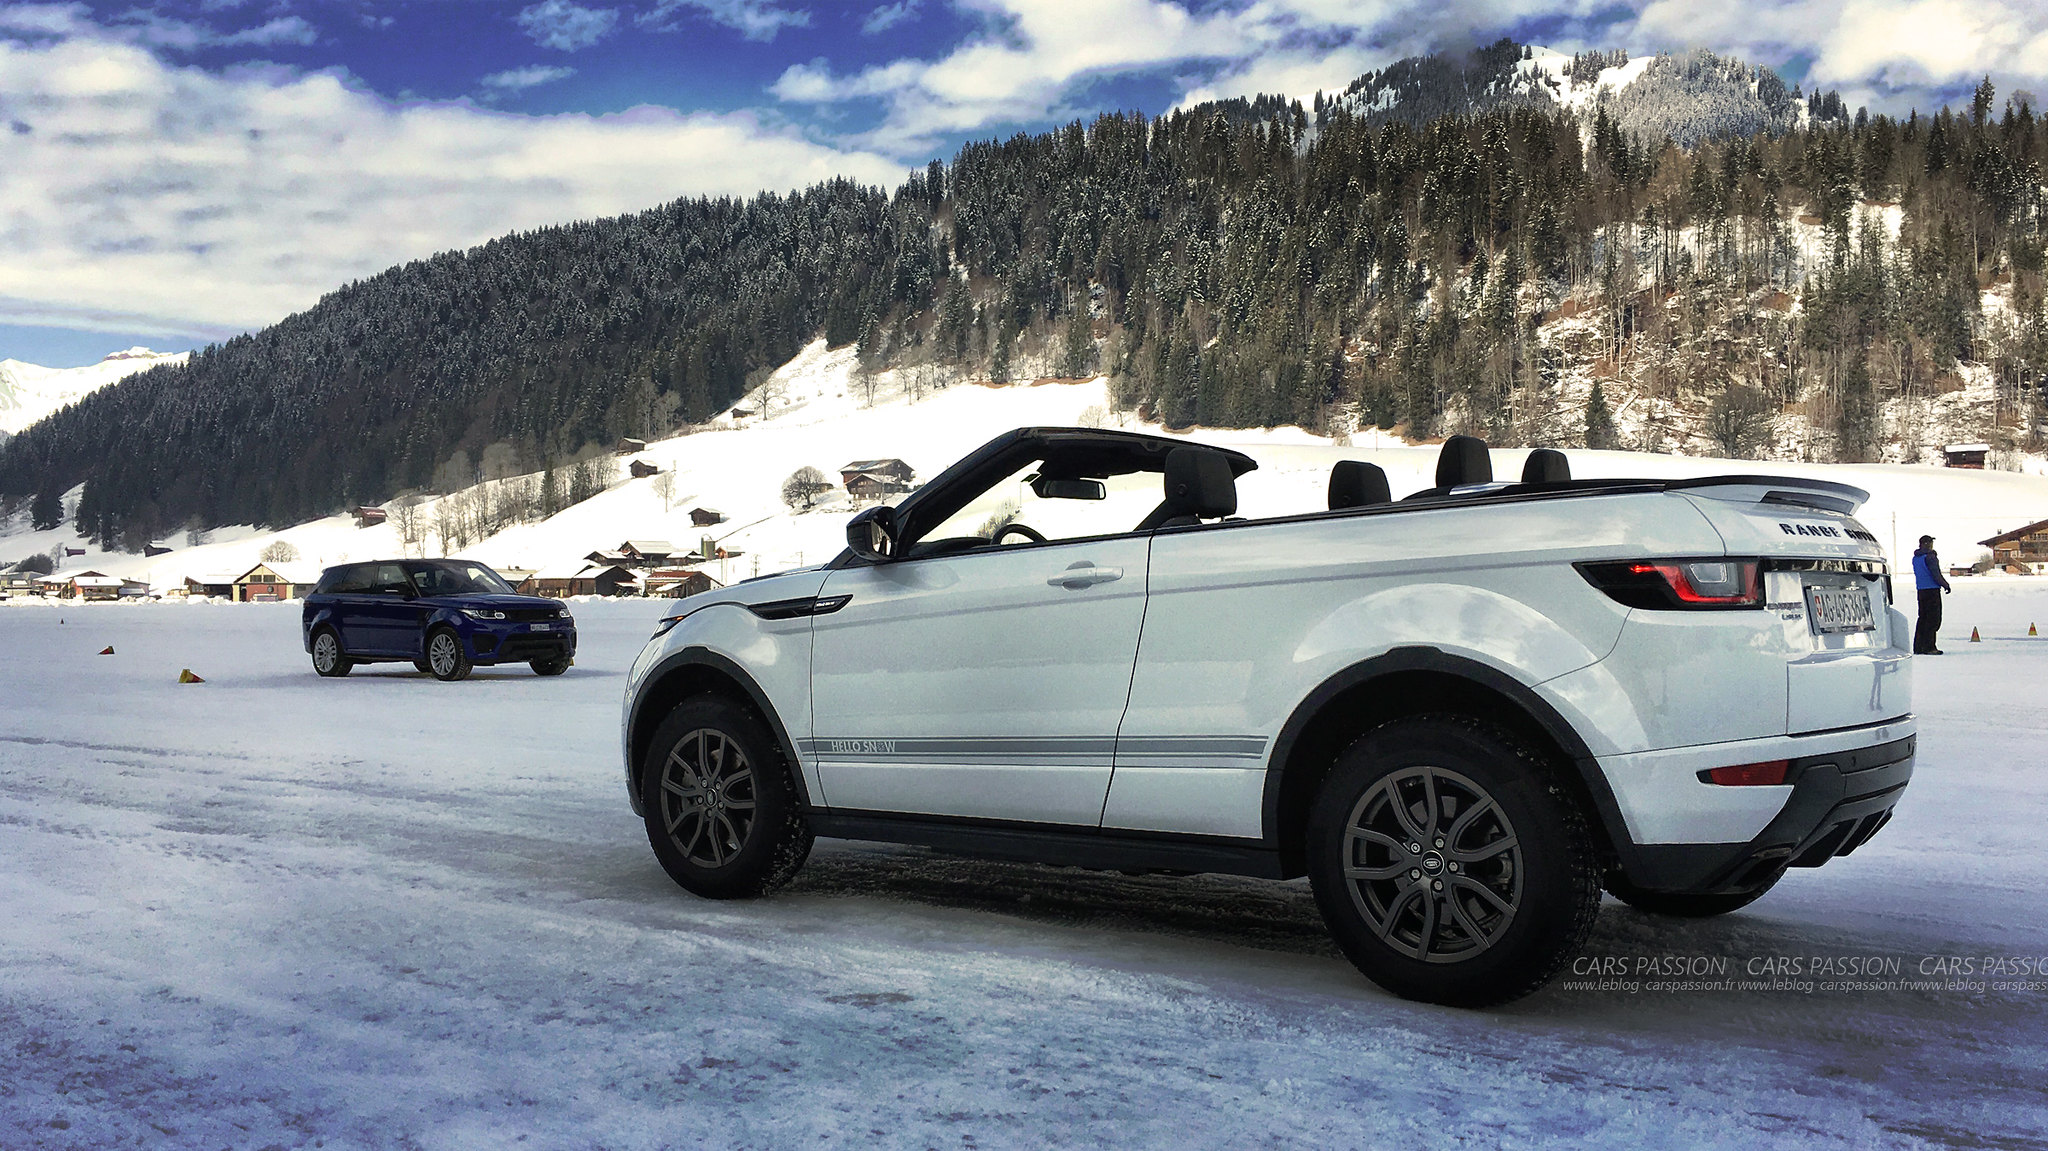 land-rover-ice-drivng-esperience-gstaad-(39)